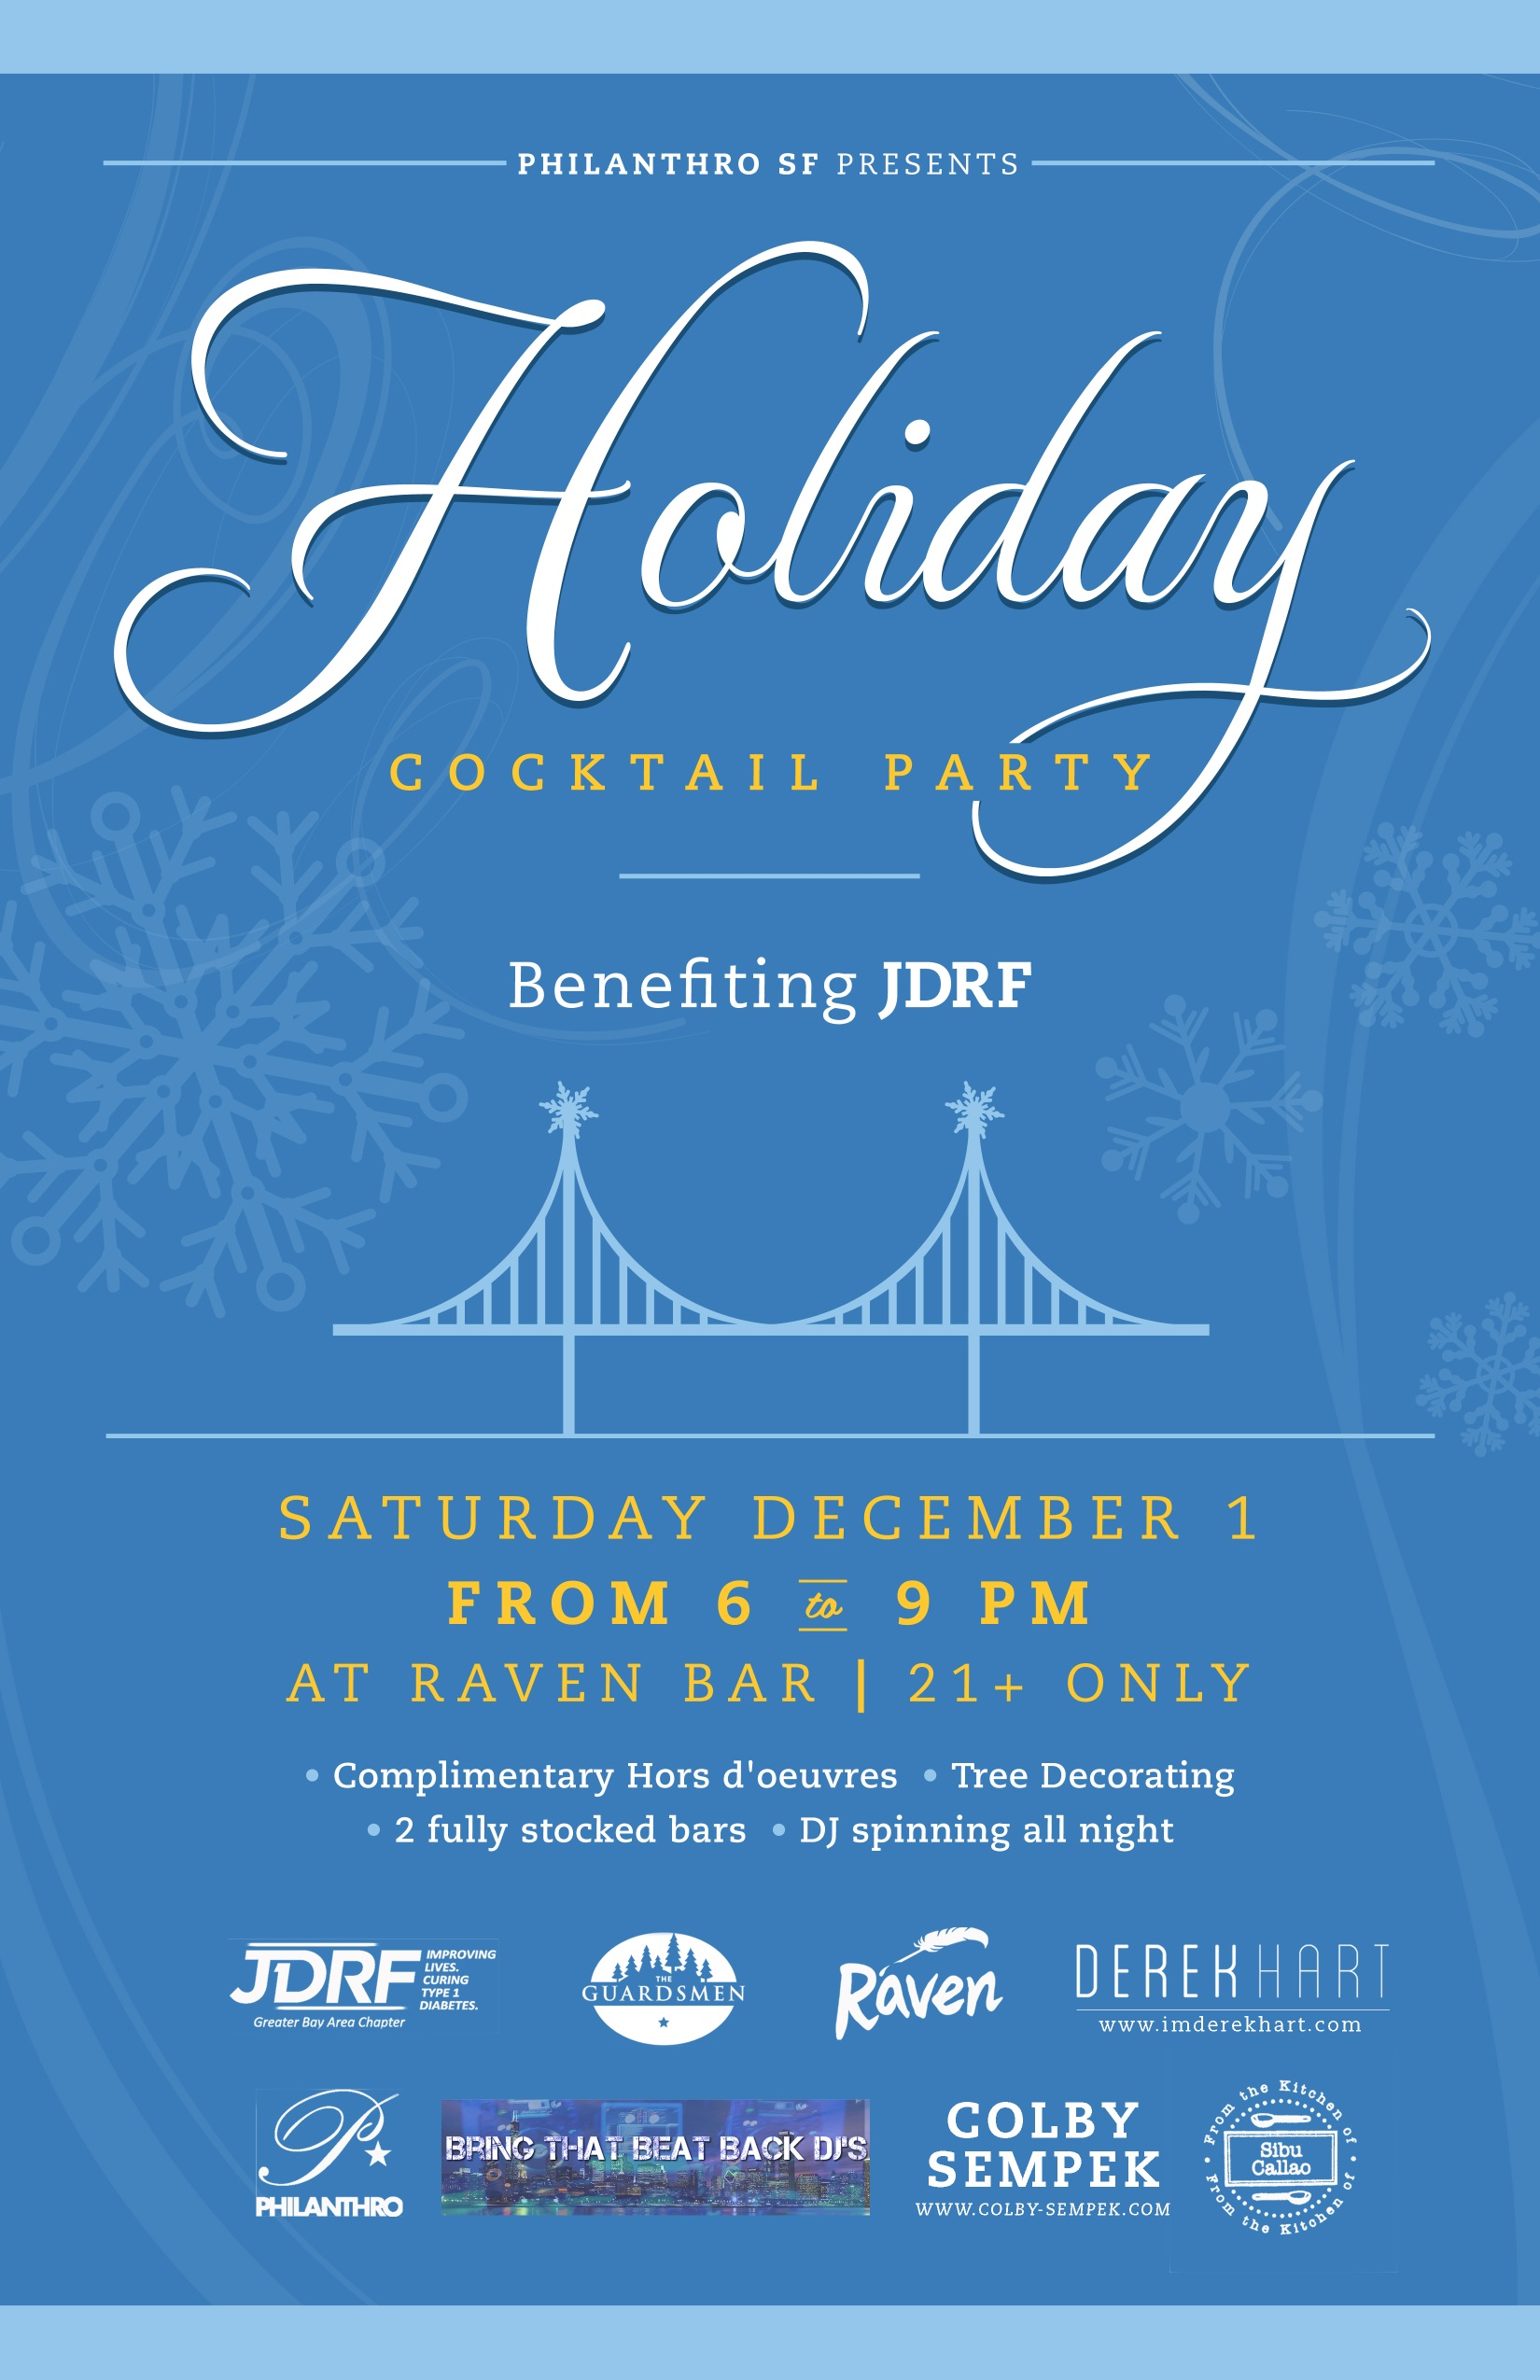 Re:Union. P*SF Holiday Party benefiting JDRF